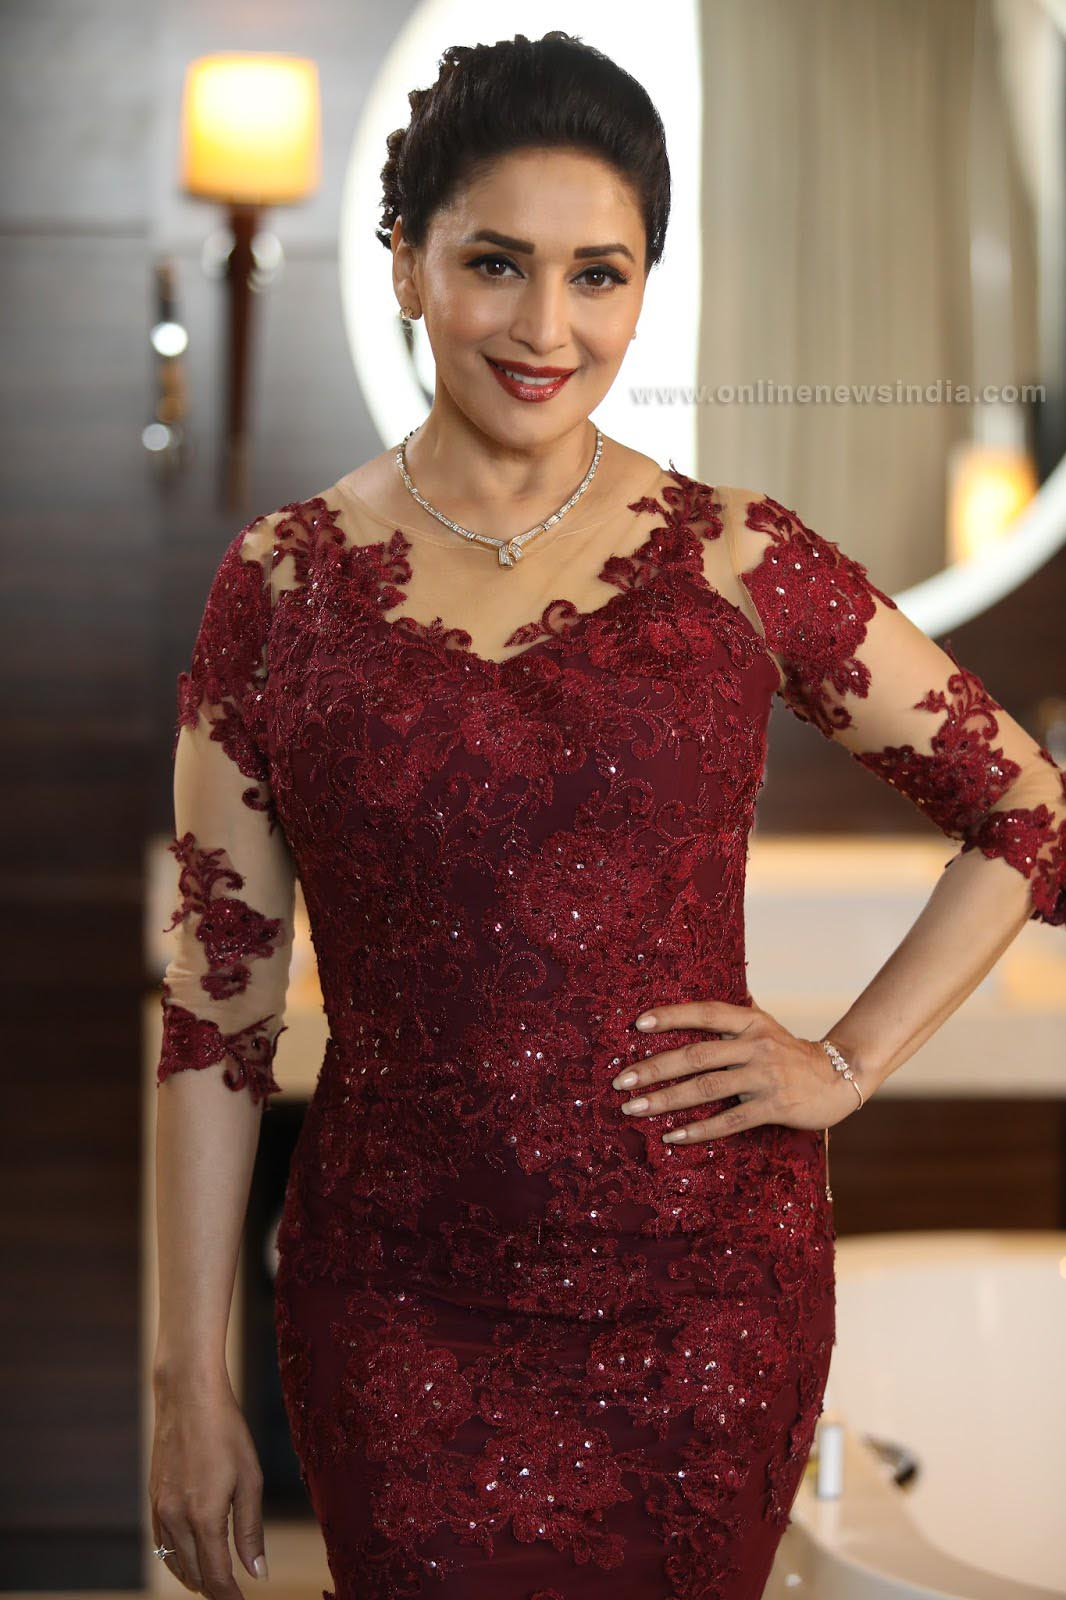 HQ Pic of Madhuri Dixit